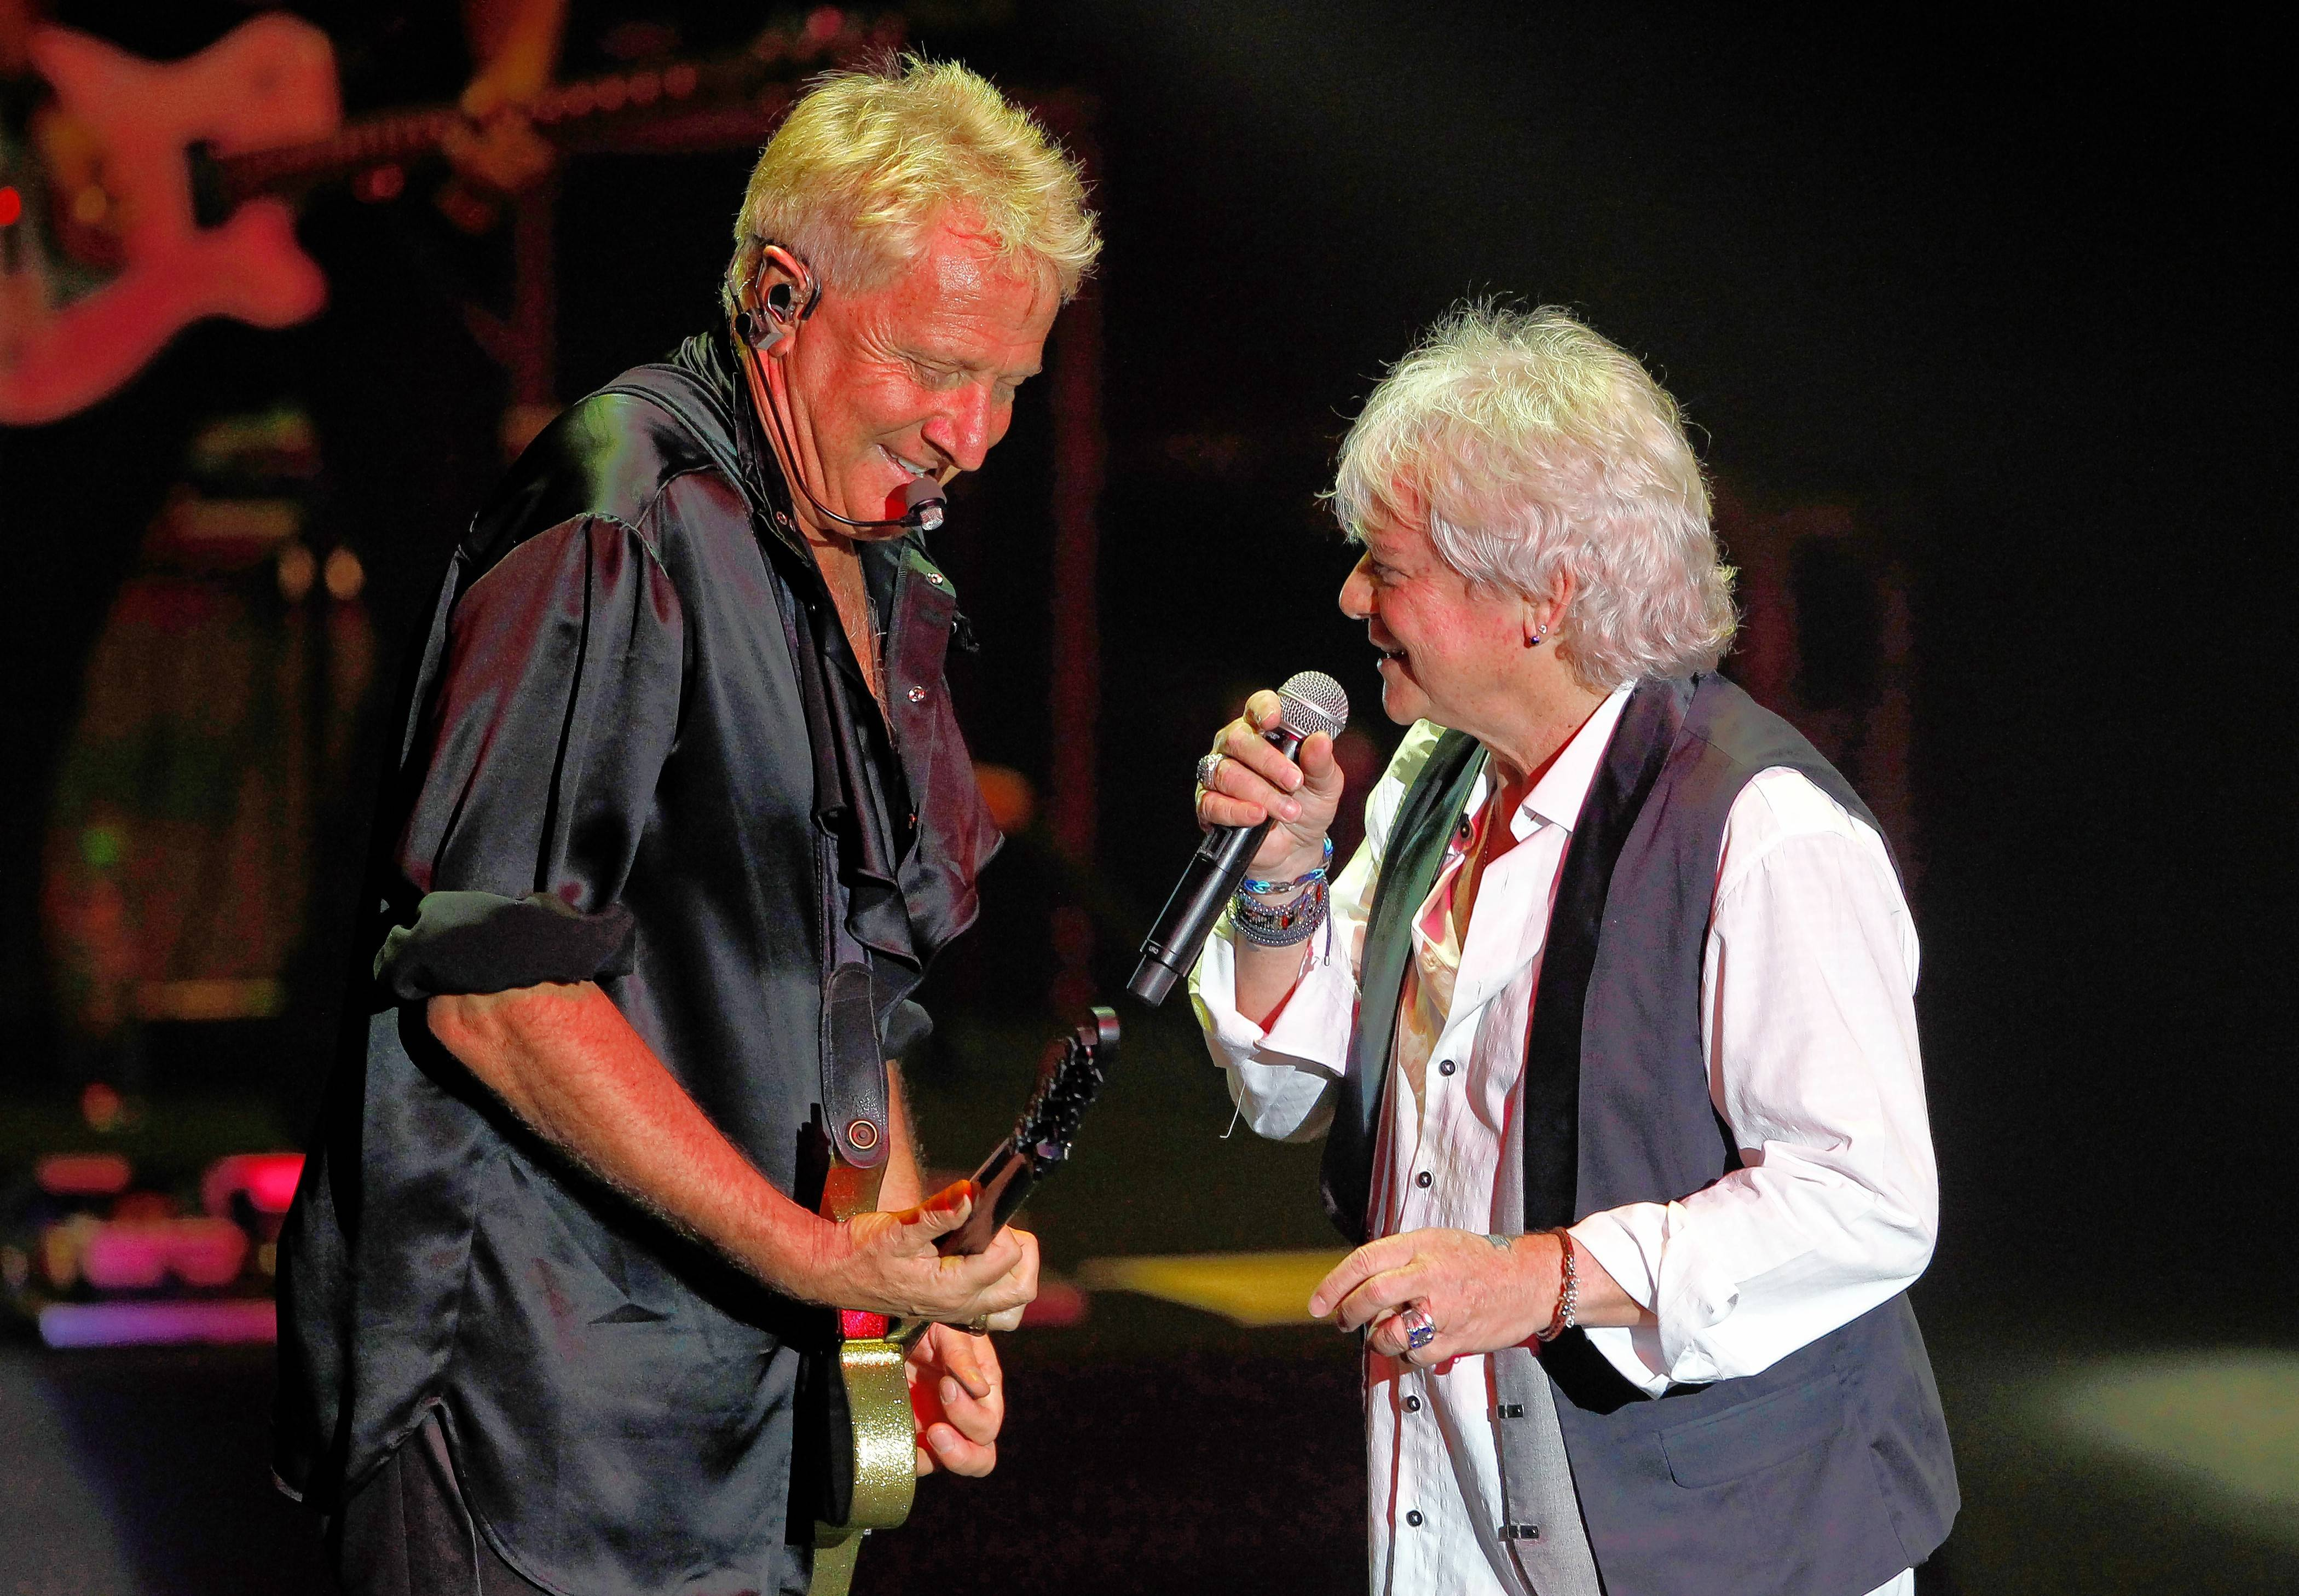 Australian soft rock duo Air Supply, featuring Graham Russell, left, and Russell Hitchcock, will perform at the Genesee in Waukegan at 7 p.m. Sunday, March 3.